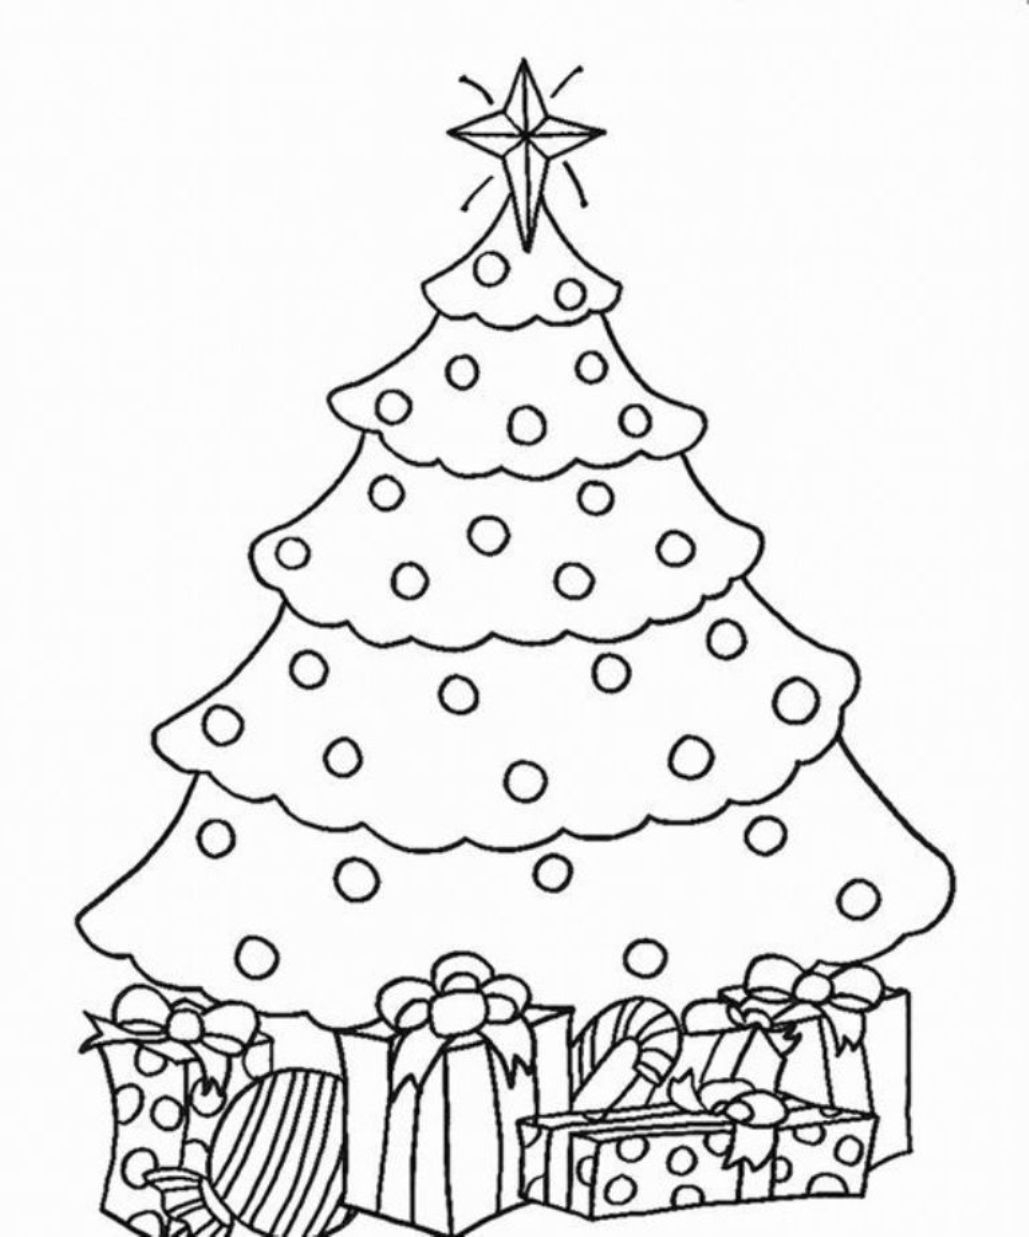 Christmas Coloring Pages Presents With Best Of Tree For Kids